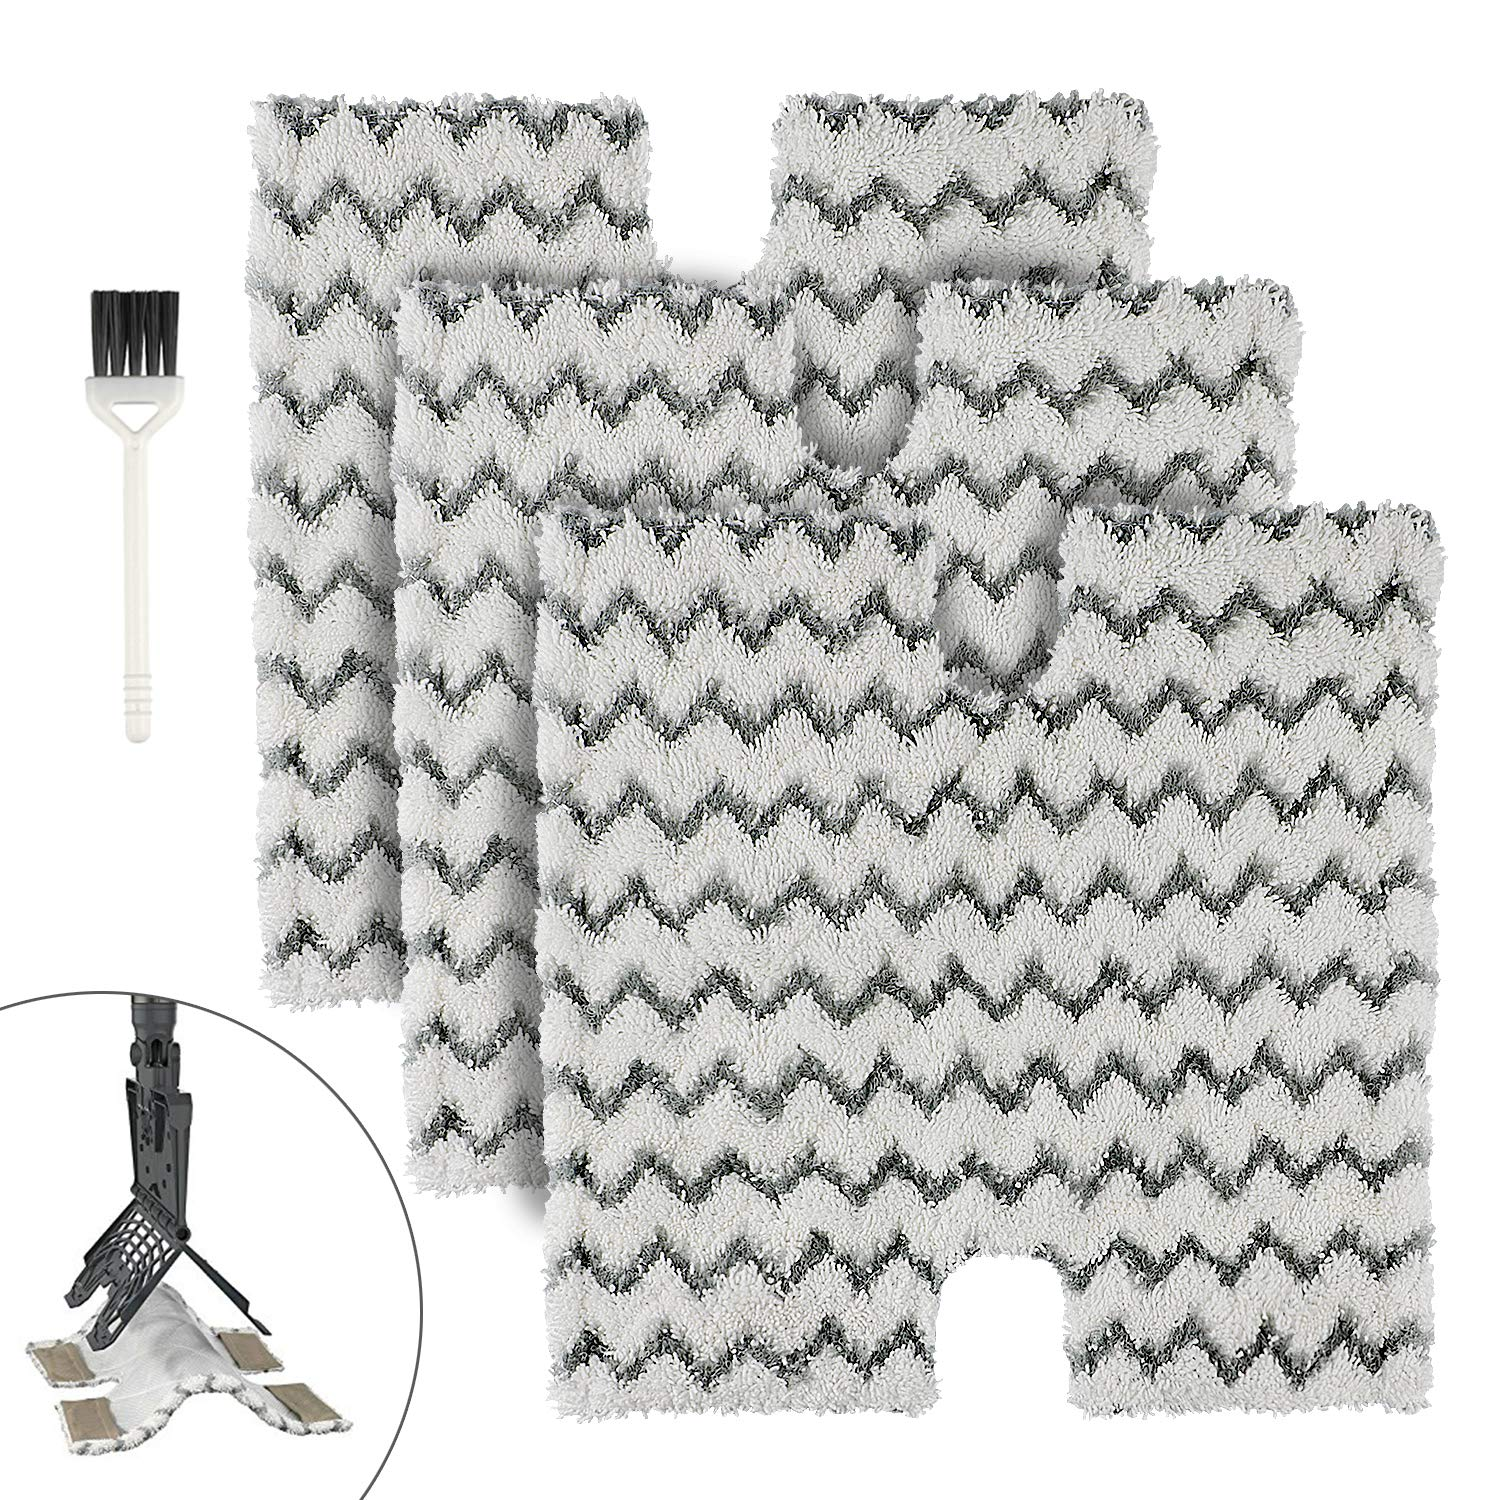 MXZONE Replacement Microfiber Steam Mop Cleaning Pads for Shark Steam Pocket Mops S3500 Series S3550 S3501 S3601 S3601D S3901 S3801 S3801CO(White) (S3973)